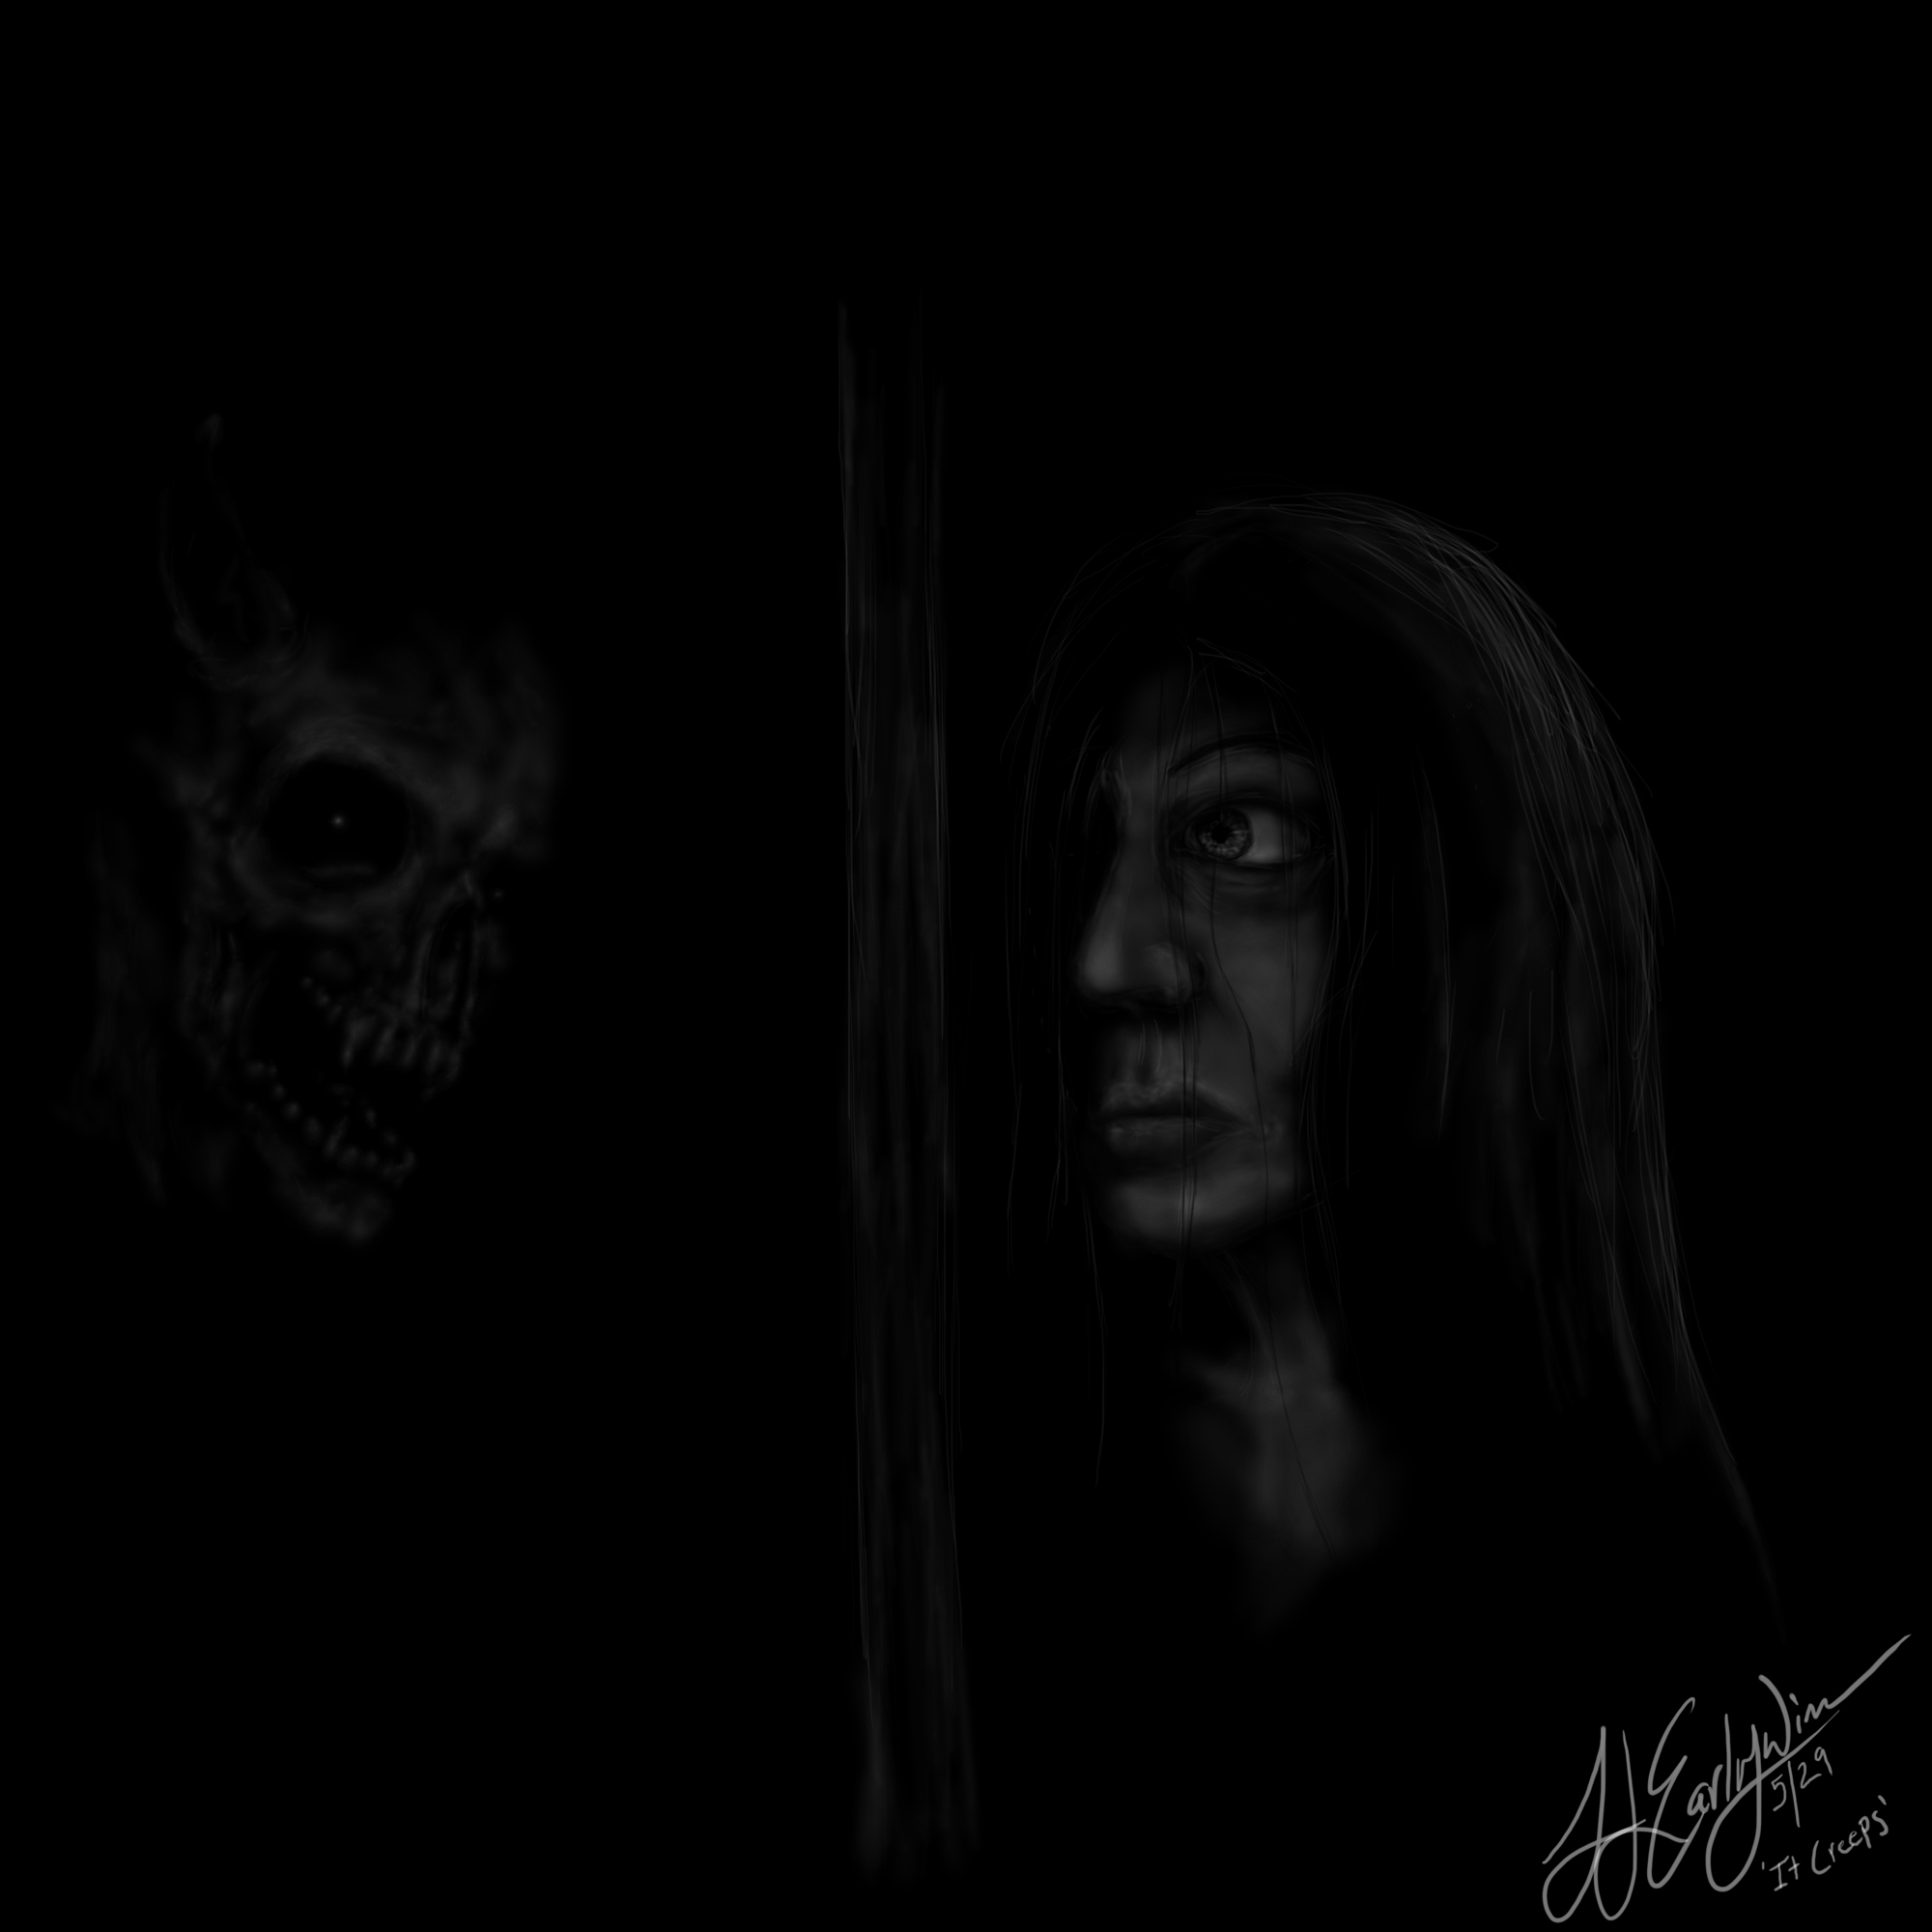 In the Dark - 'It Creeps'